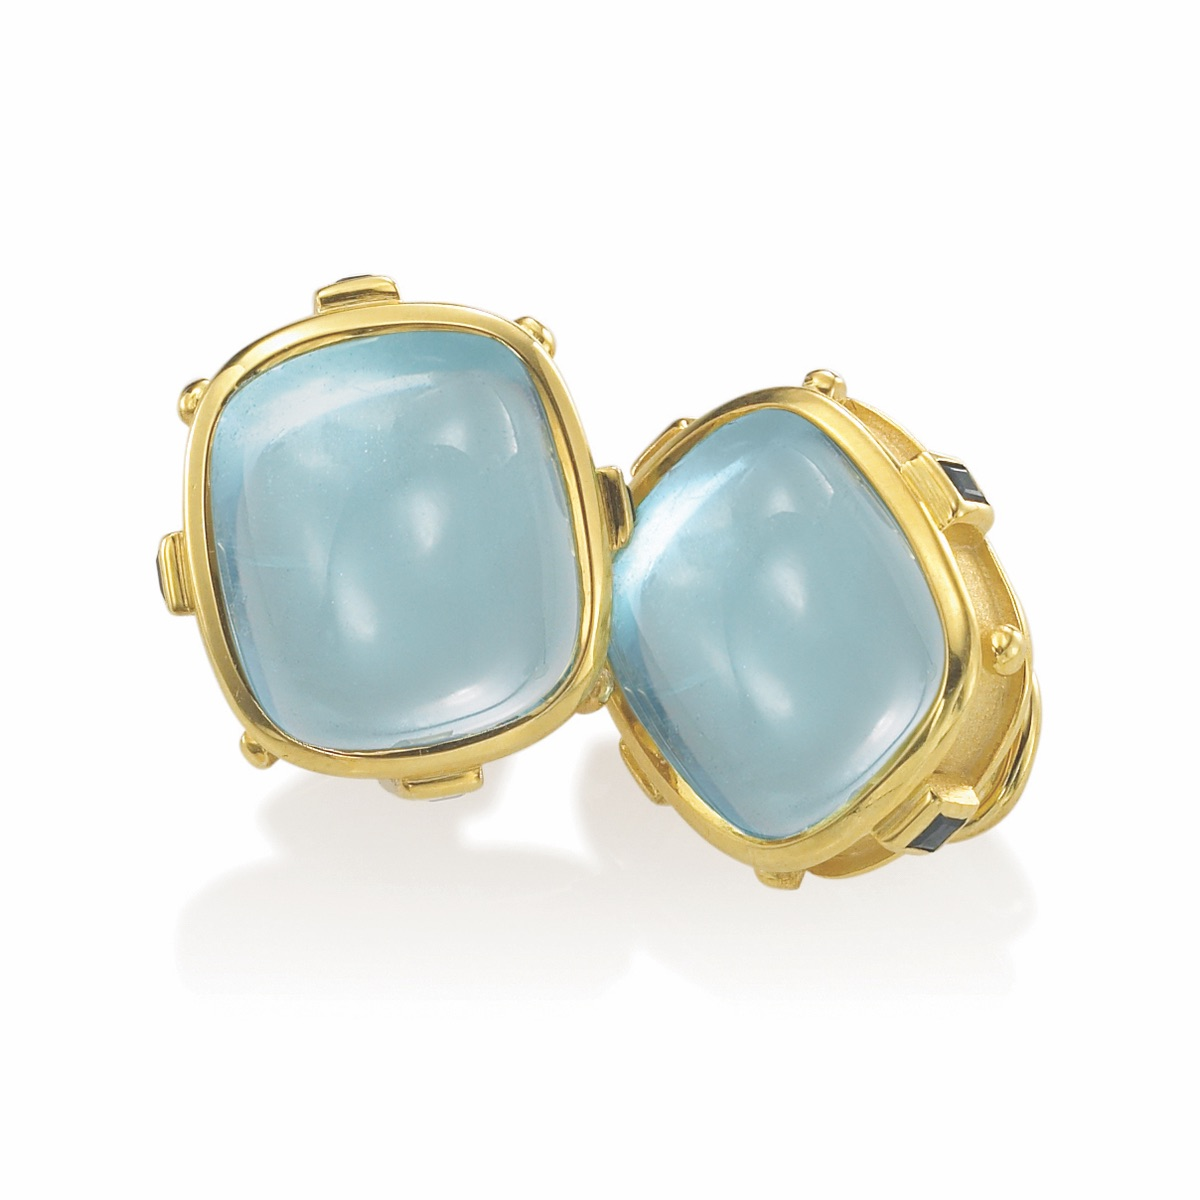 The Jewel - Mazza - Lookbook - Gold and Blue Square Earrings